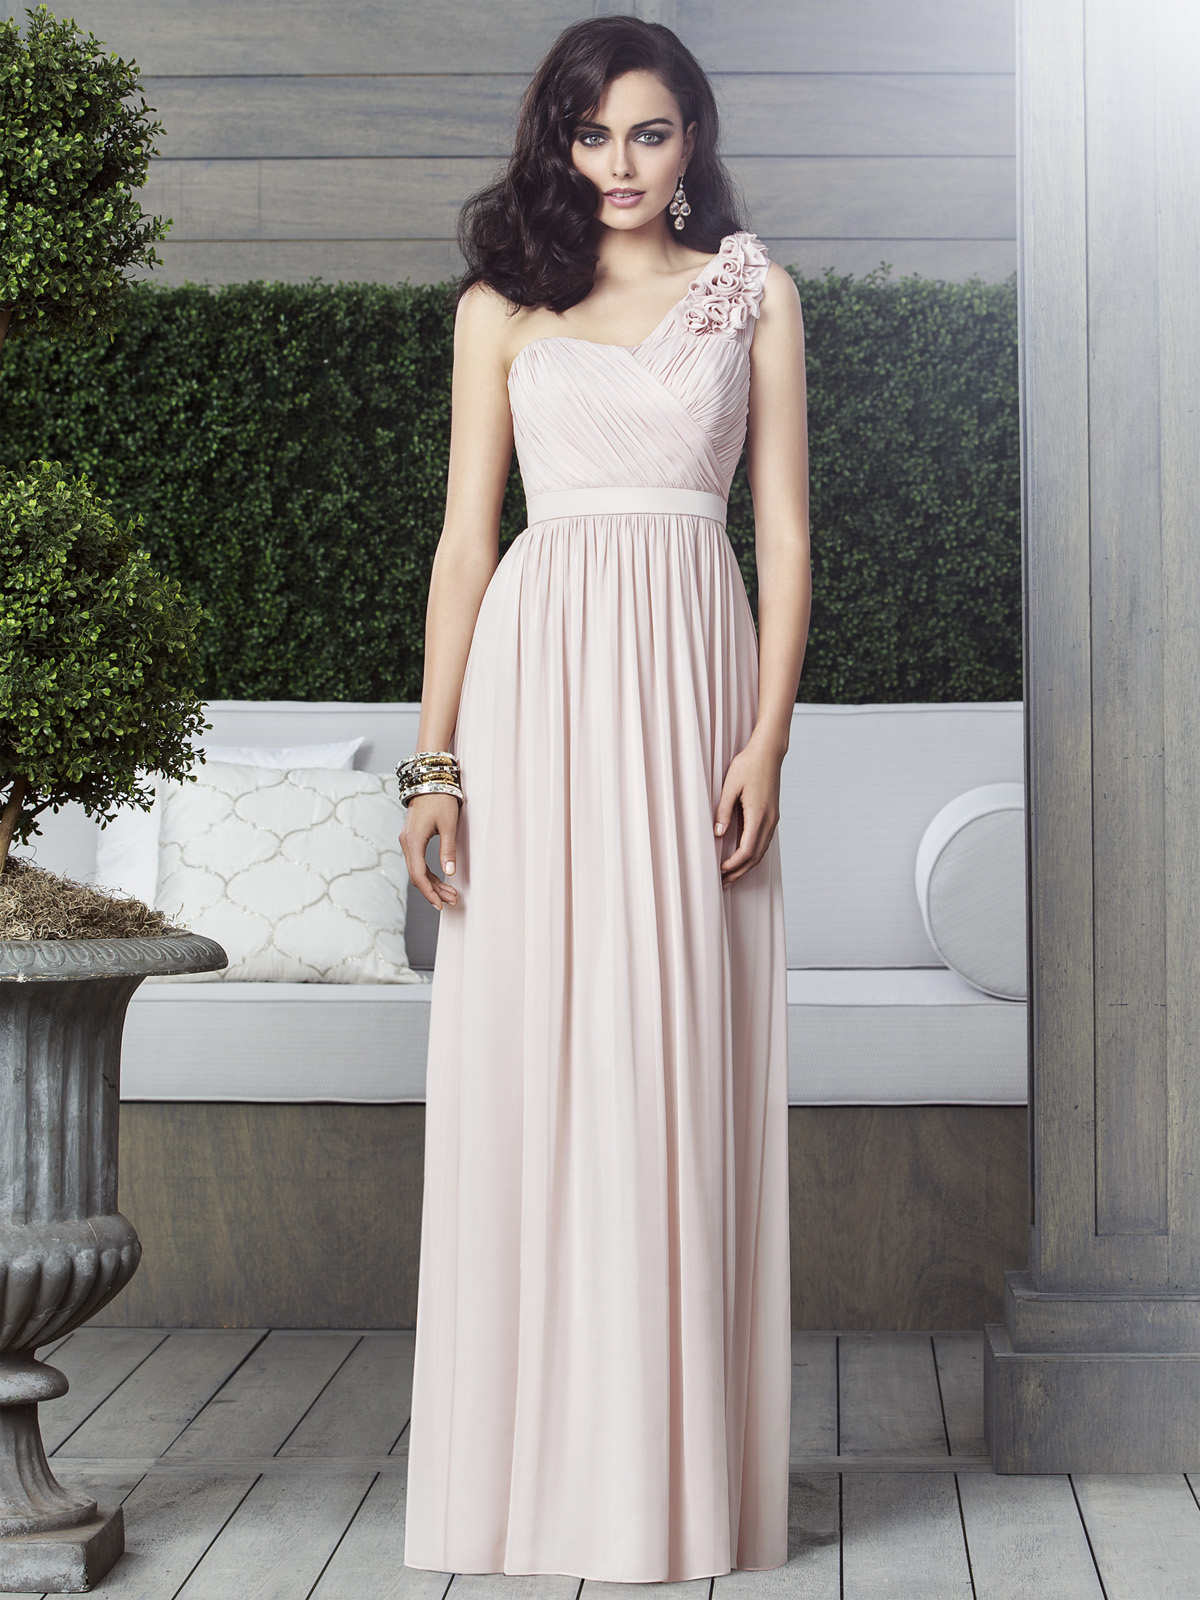 Dessy bridesmaid dress 2909 dimitradesigns one shoulder ruched bridesmaid dress dessy 2909 ombrellifo Gallery